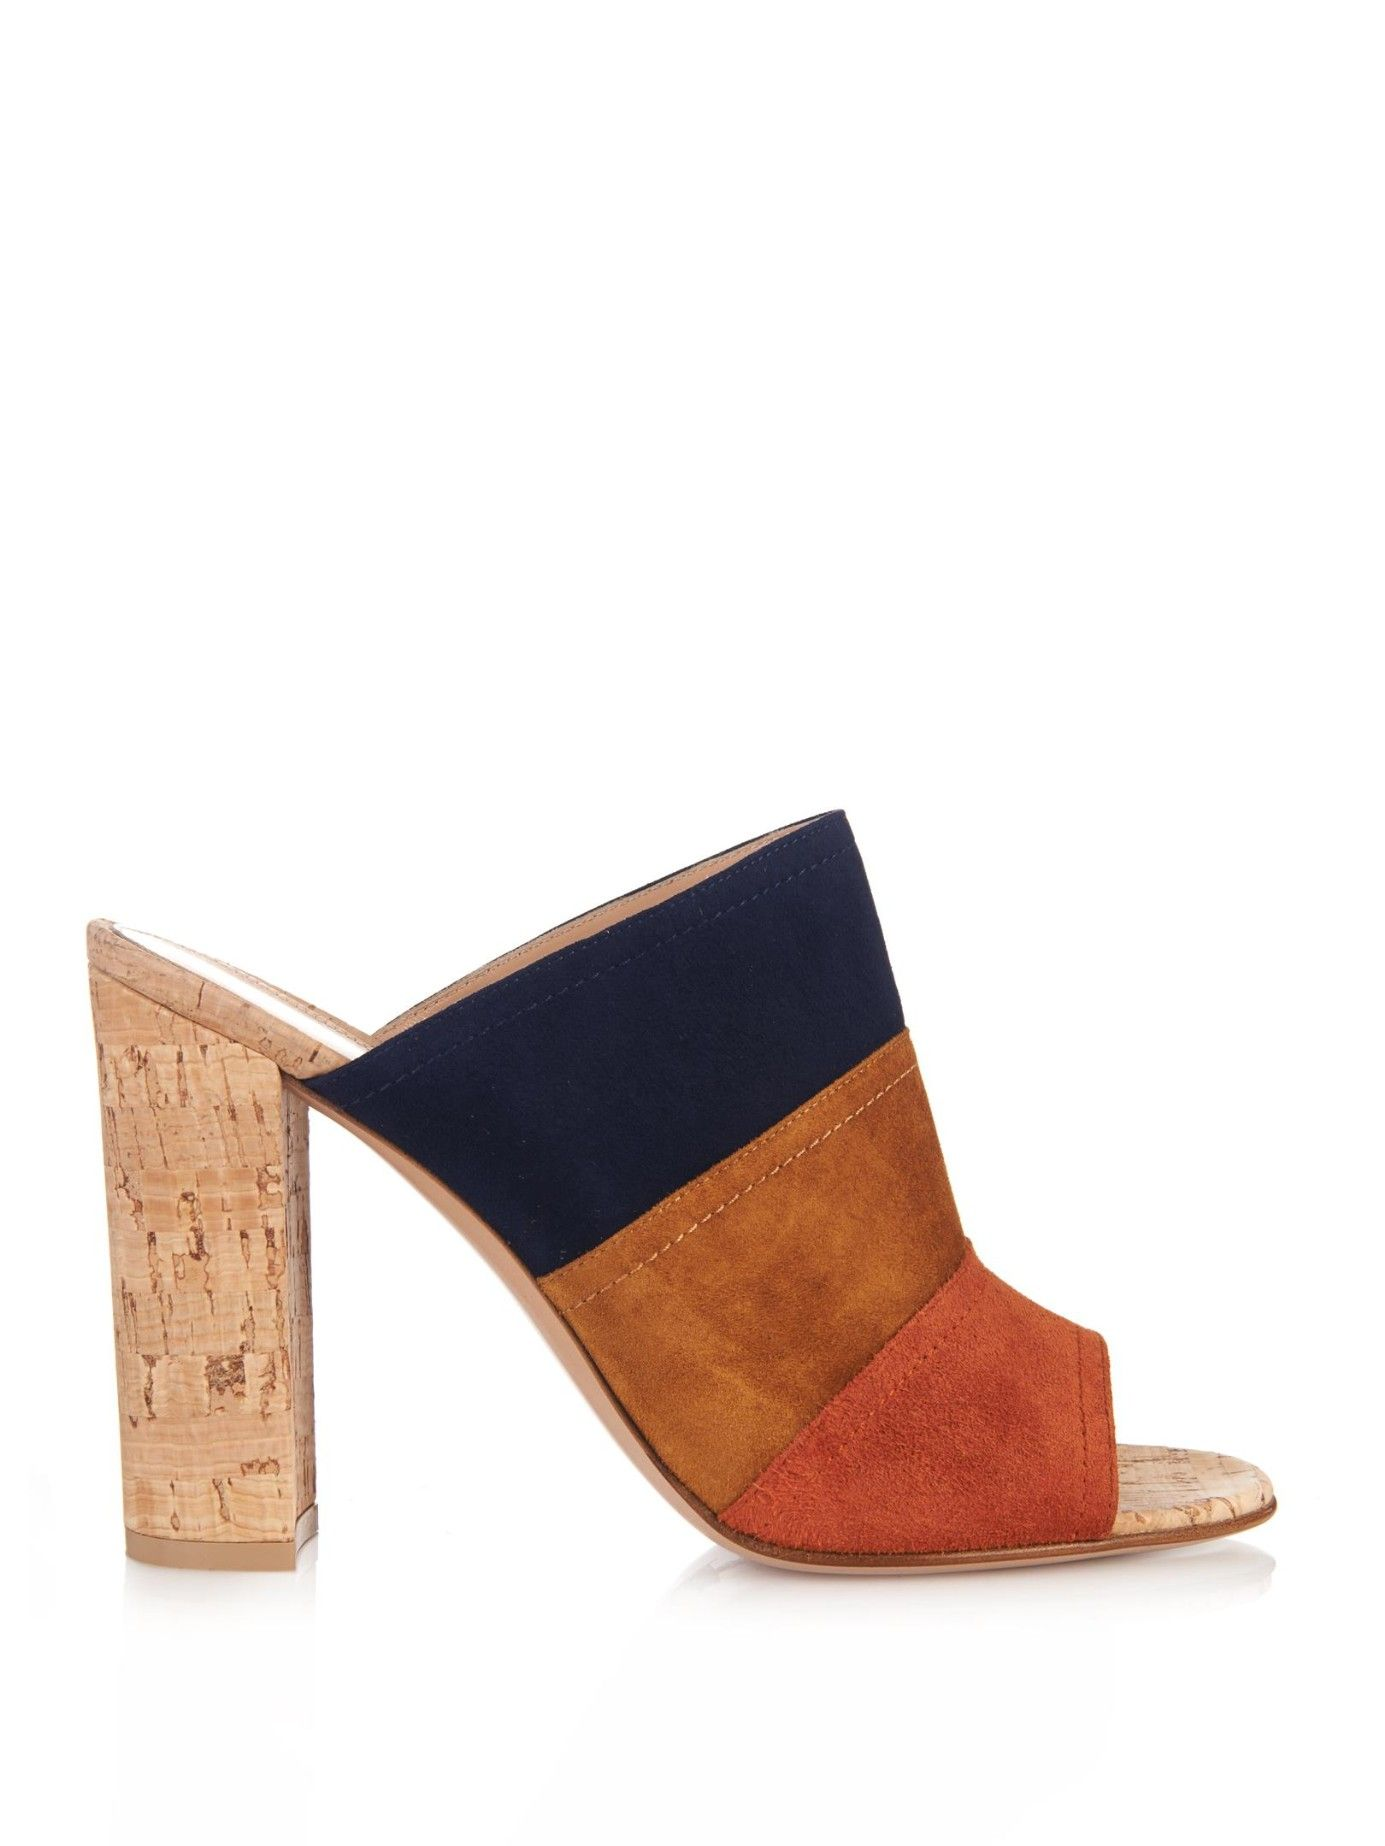 Womens High Heels Gianvito Rossi Tri Colour Suede and Cork Mules Heels gianvitorossi On Sale Store